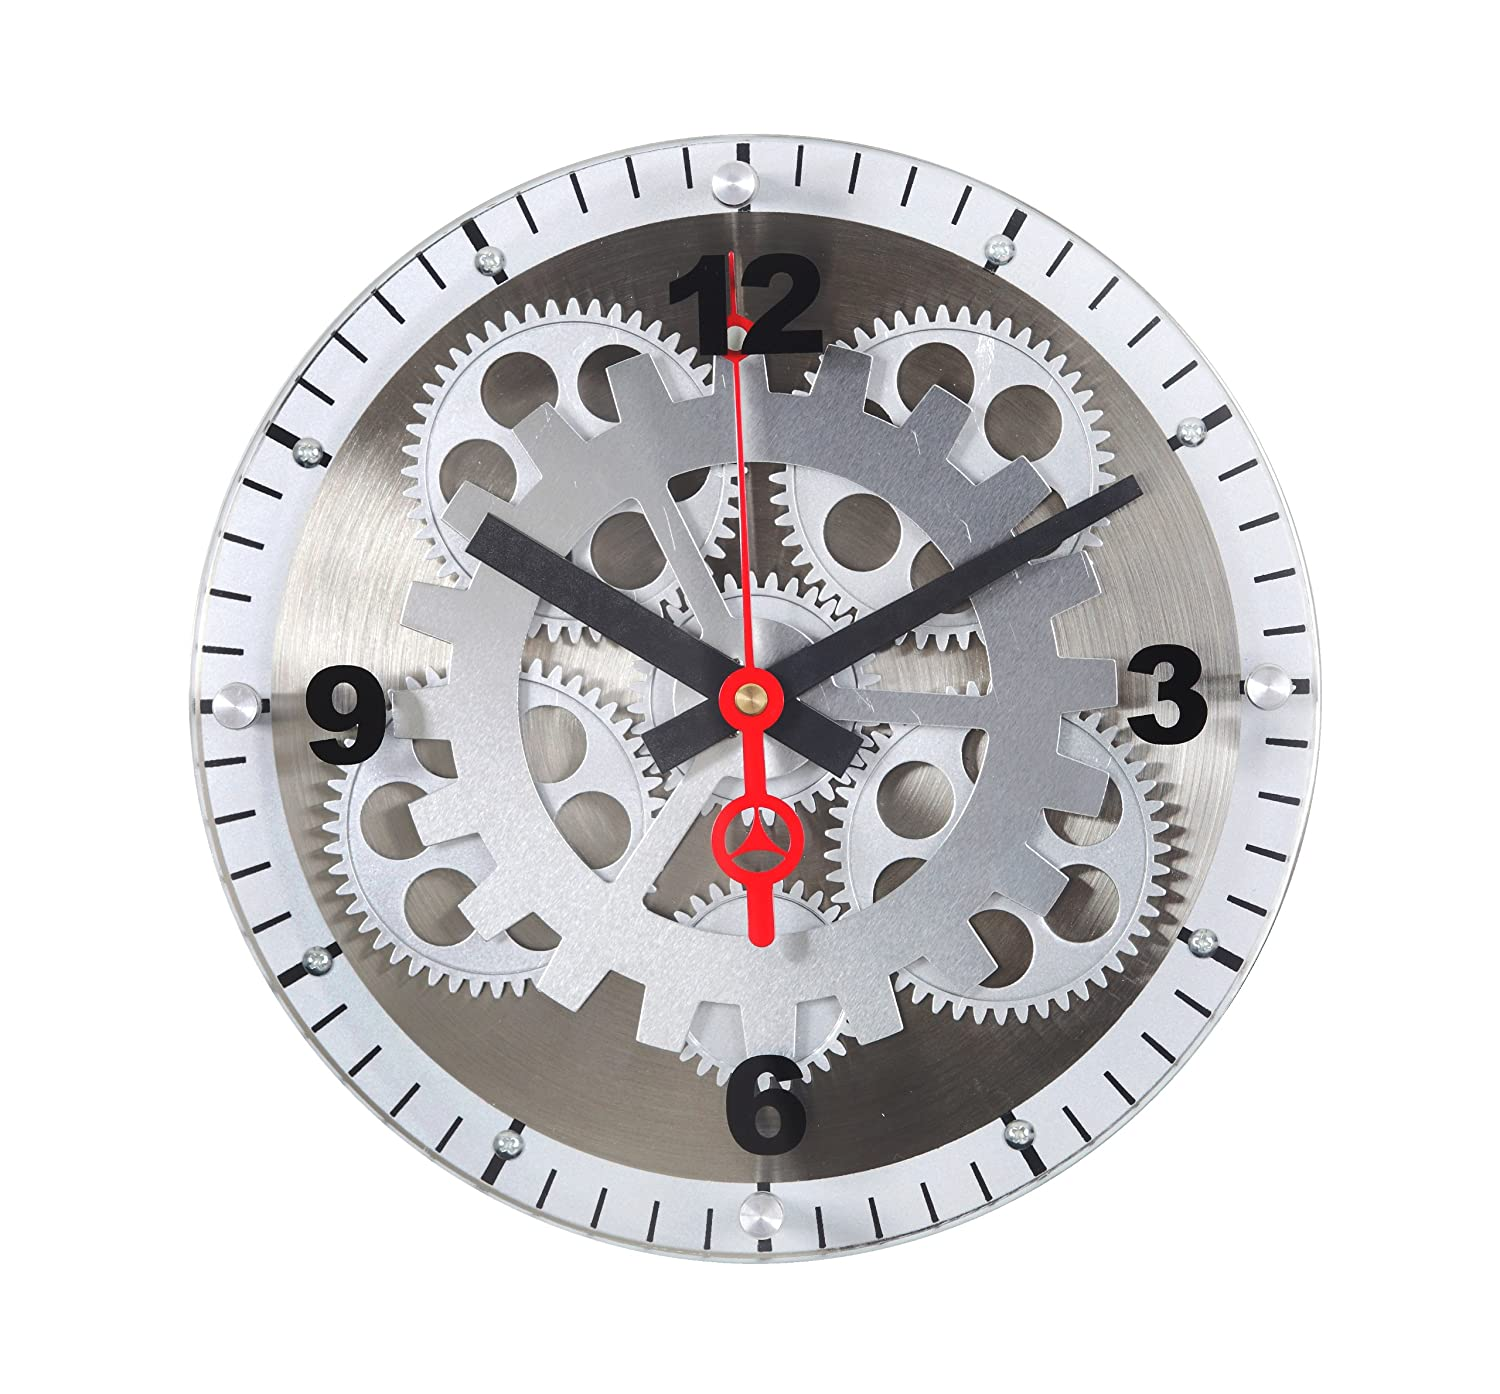 Amazon Maples 10 Inch Moving Gear Wall Clock Glass Cover